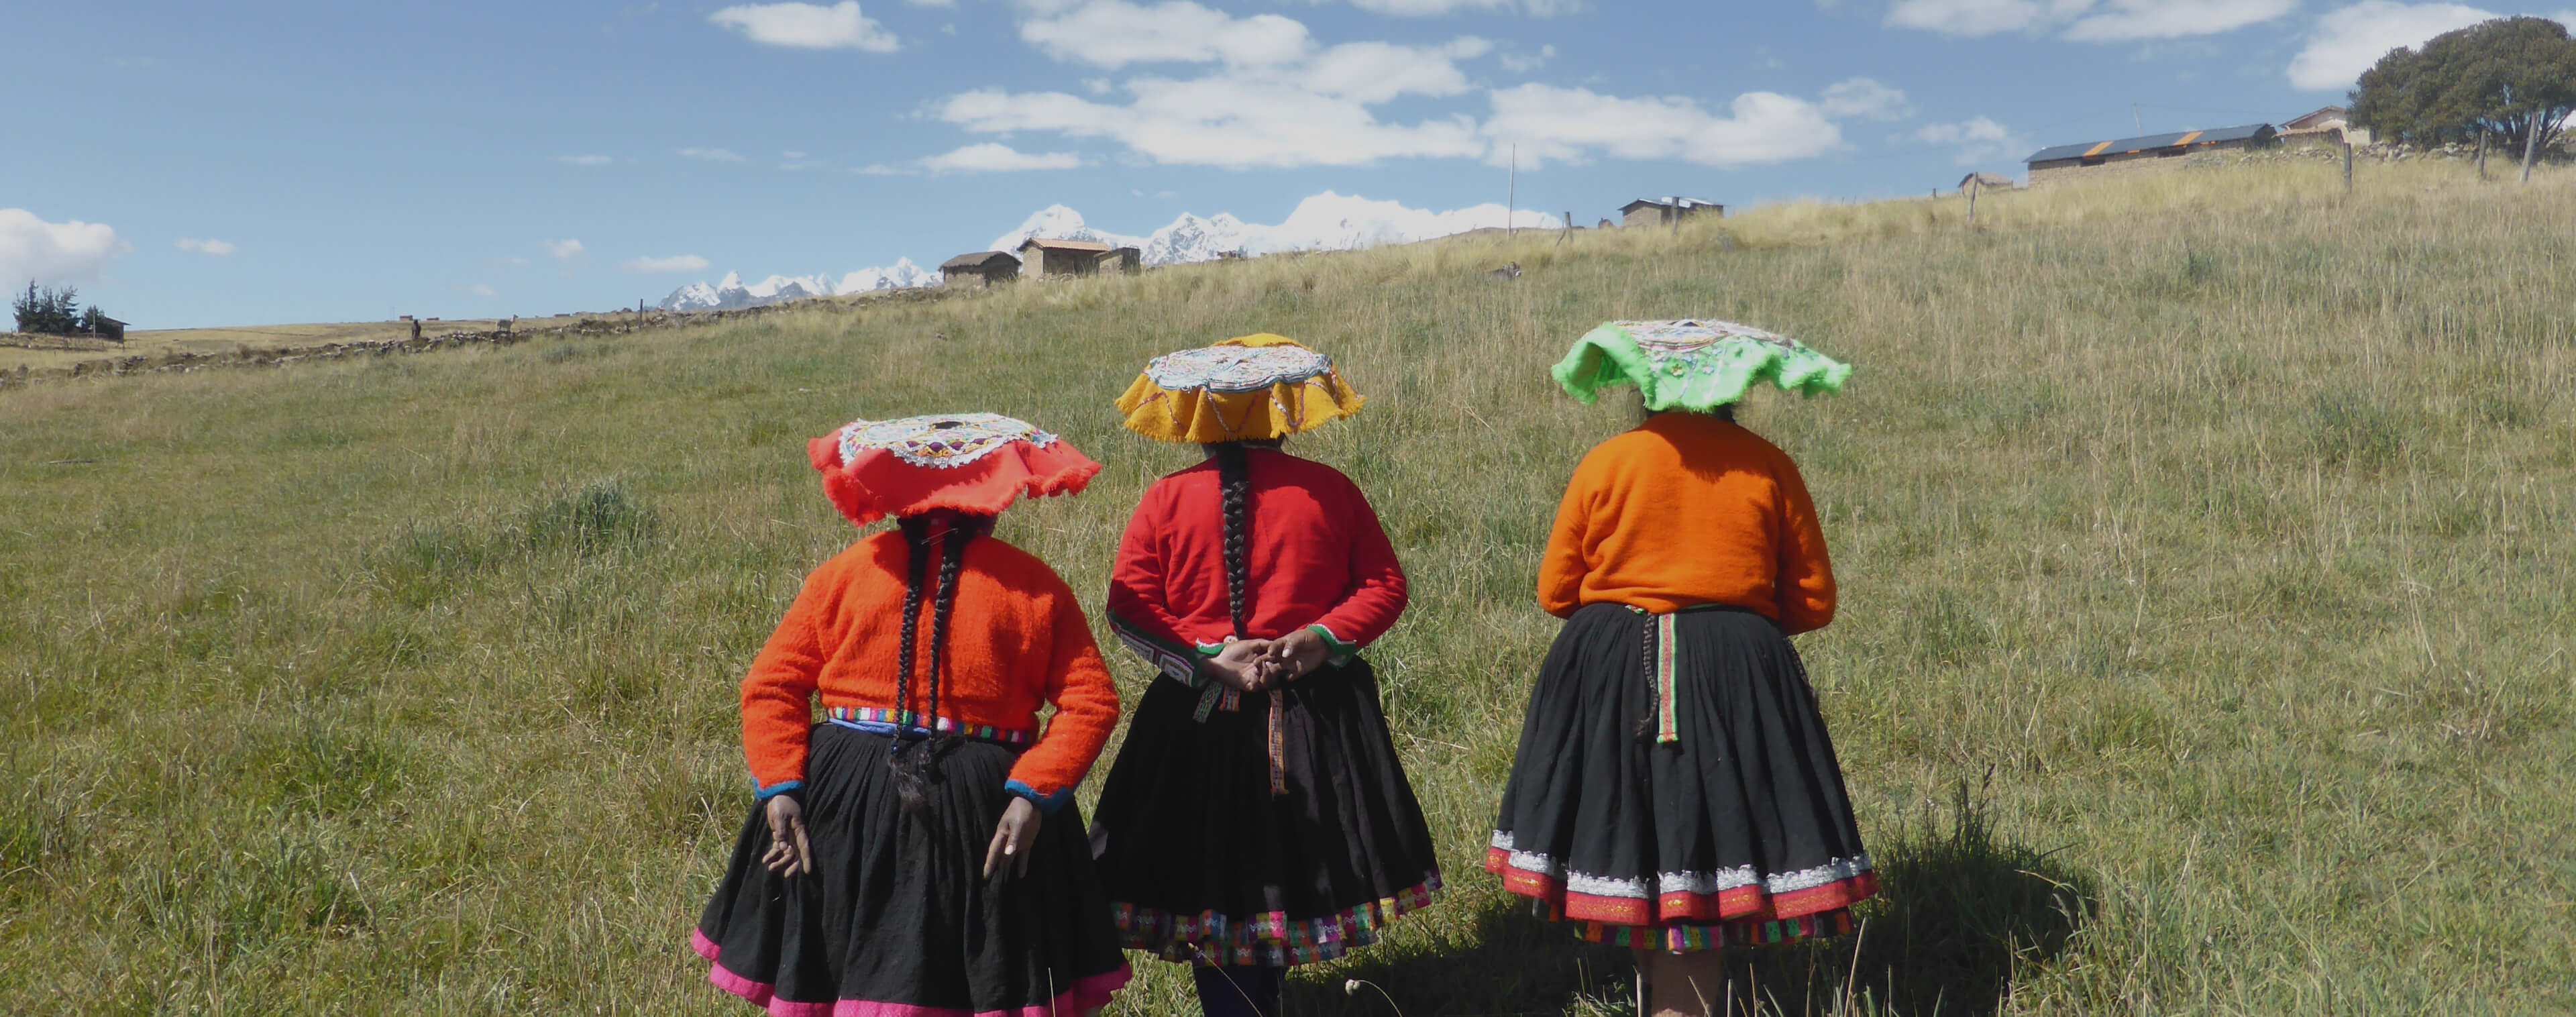 Three Peruvian women in traditional dress, walking across pasture with small dwellings and snow capped Peruvian Andes in the distance.